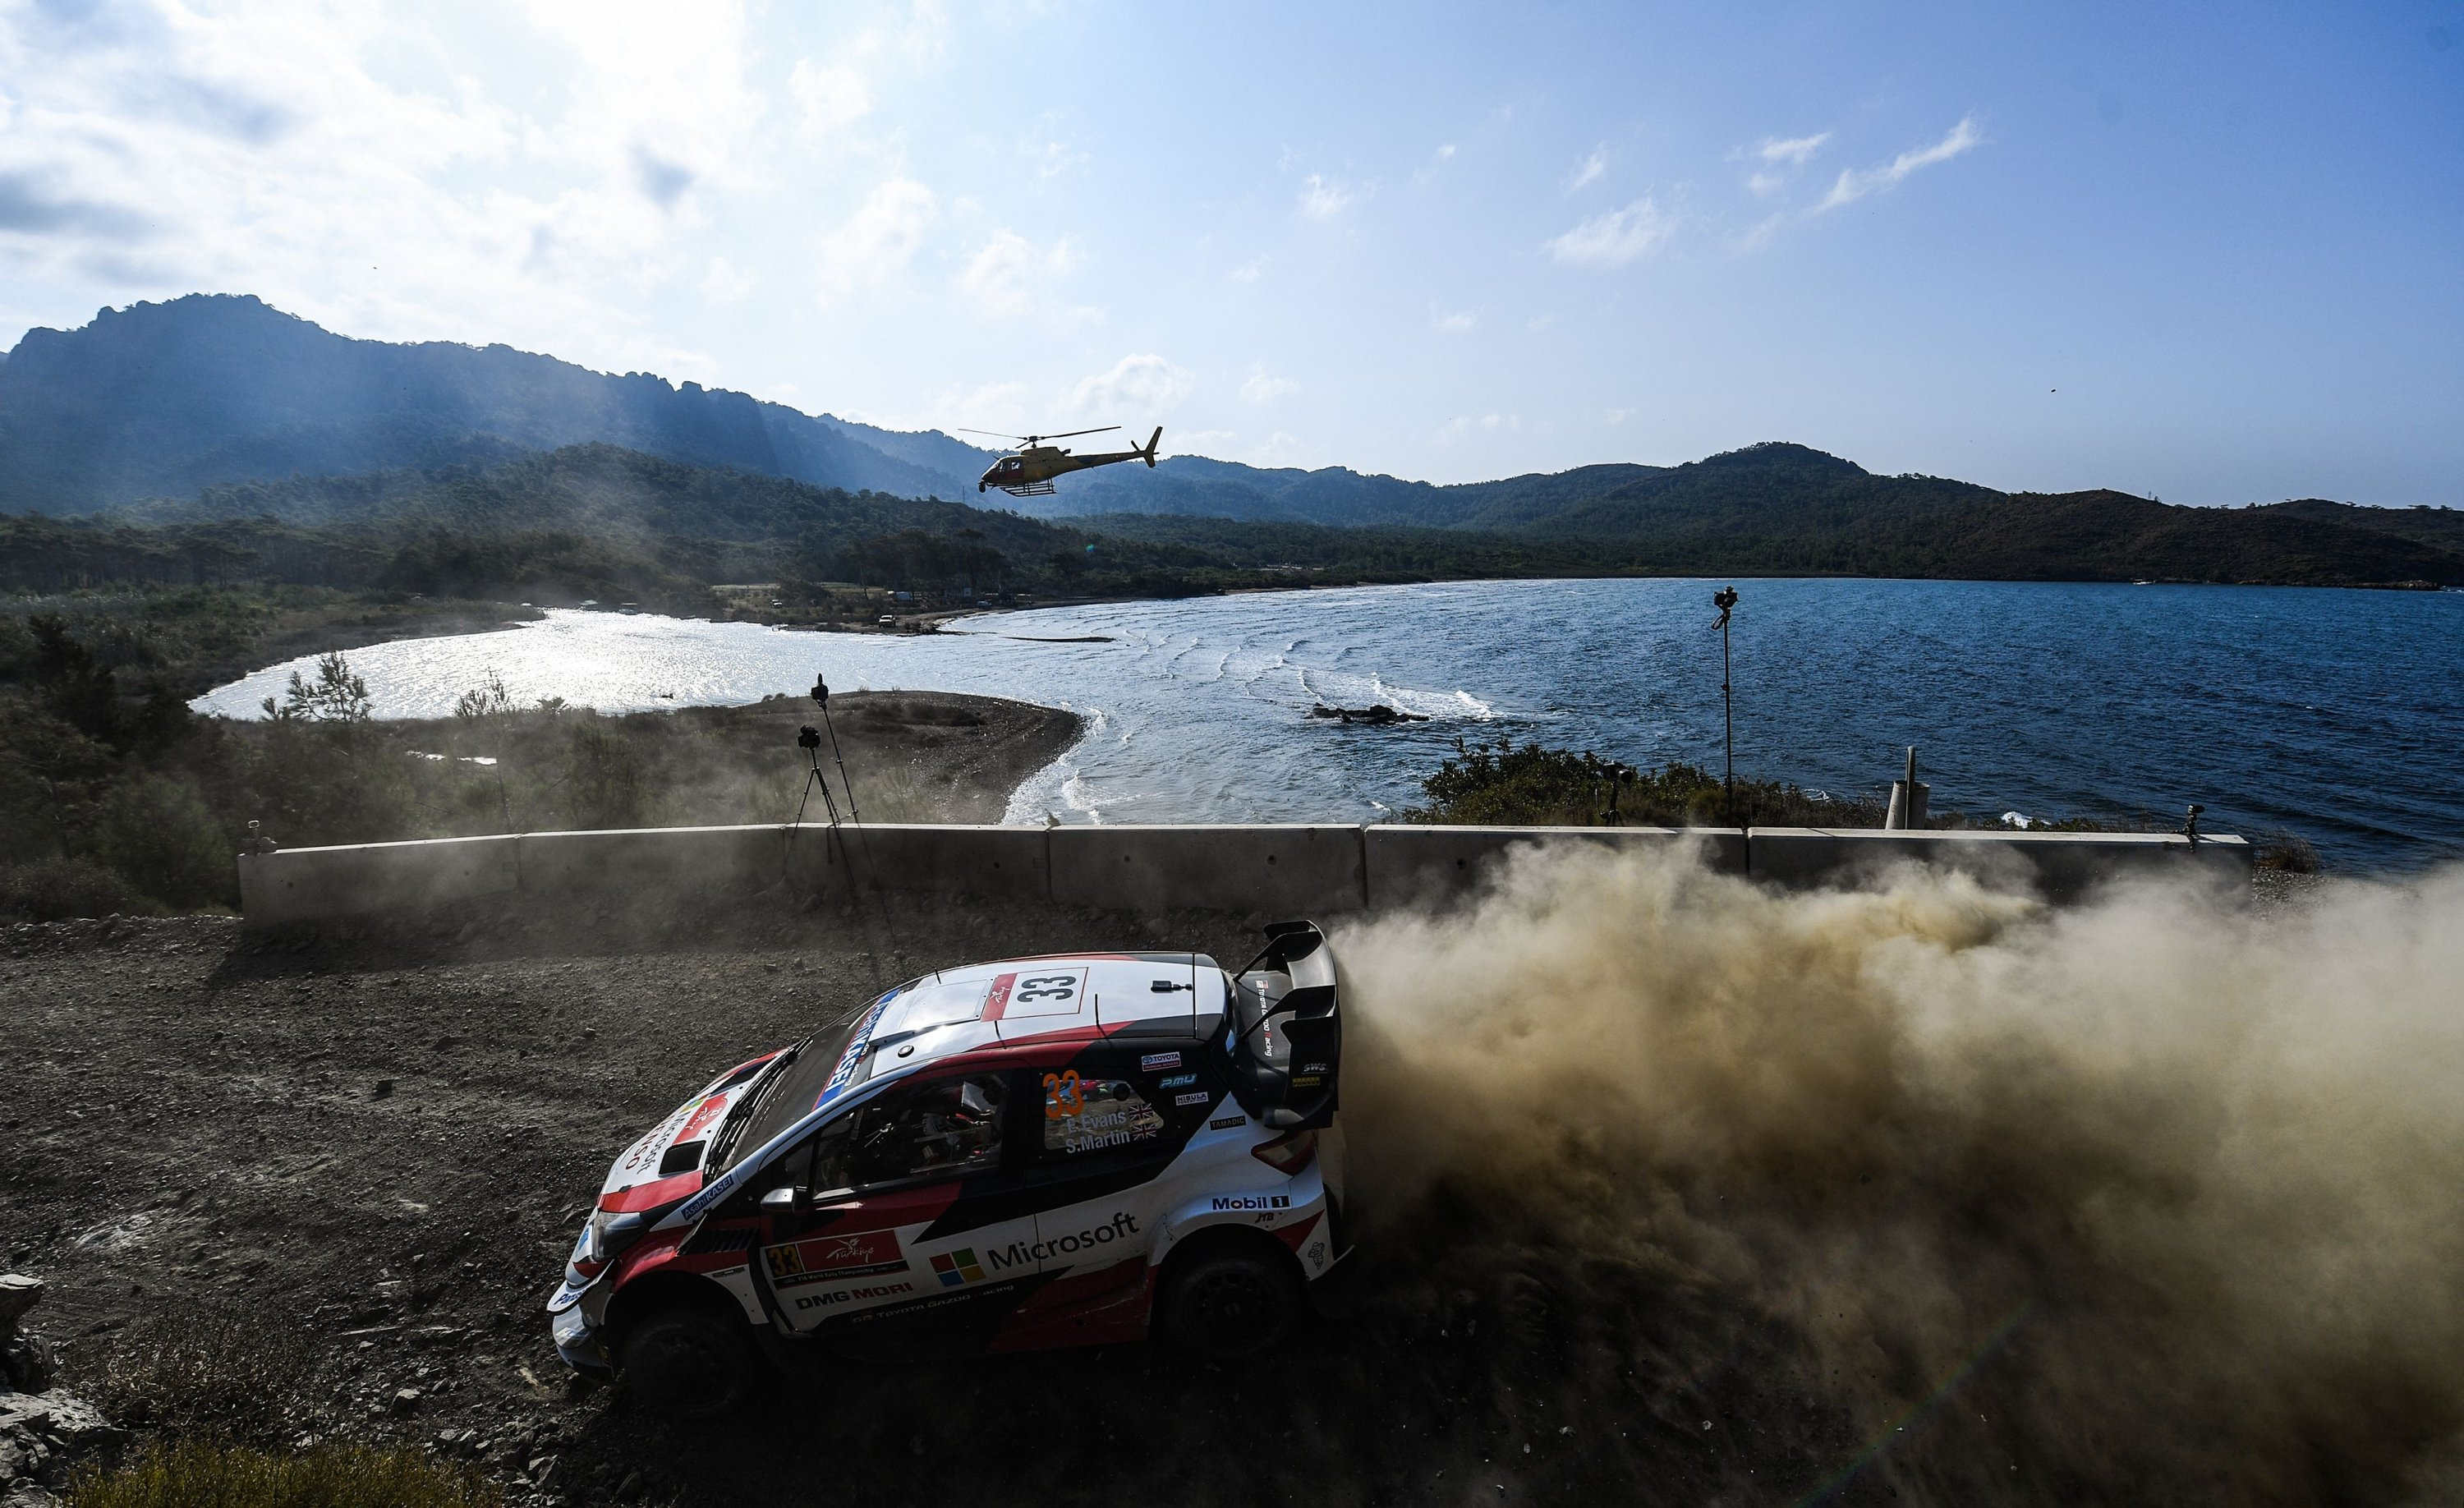 British pilot Elfyn Evans and co-driver Scott Martin steer their Toyota Yaris WRC racing car during the Yesilbelde stage on the second day of the Turkish WRC rally in Muğla, Turkey, Sept. 20, 2020. (AFP Photo)